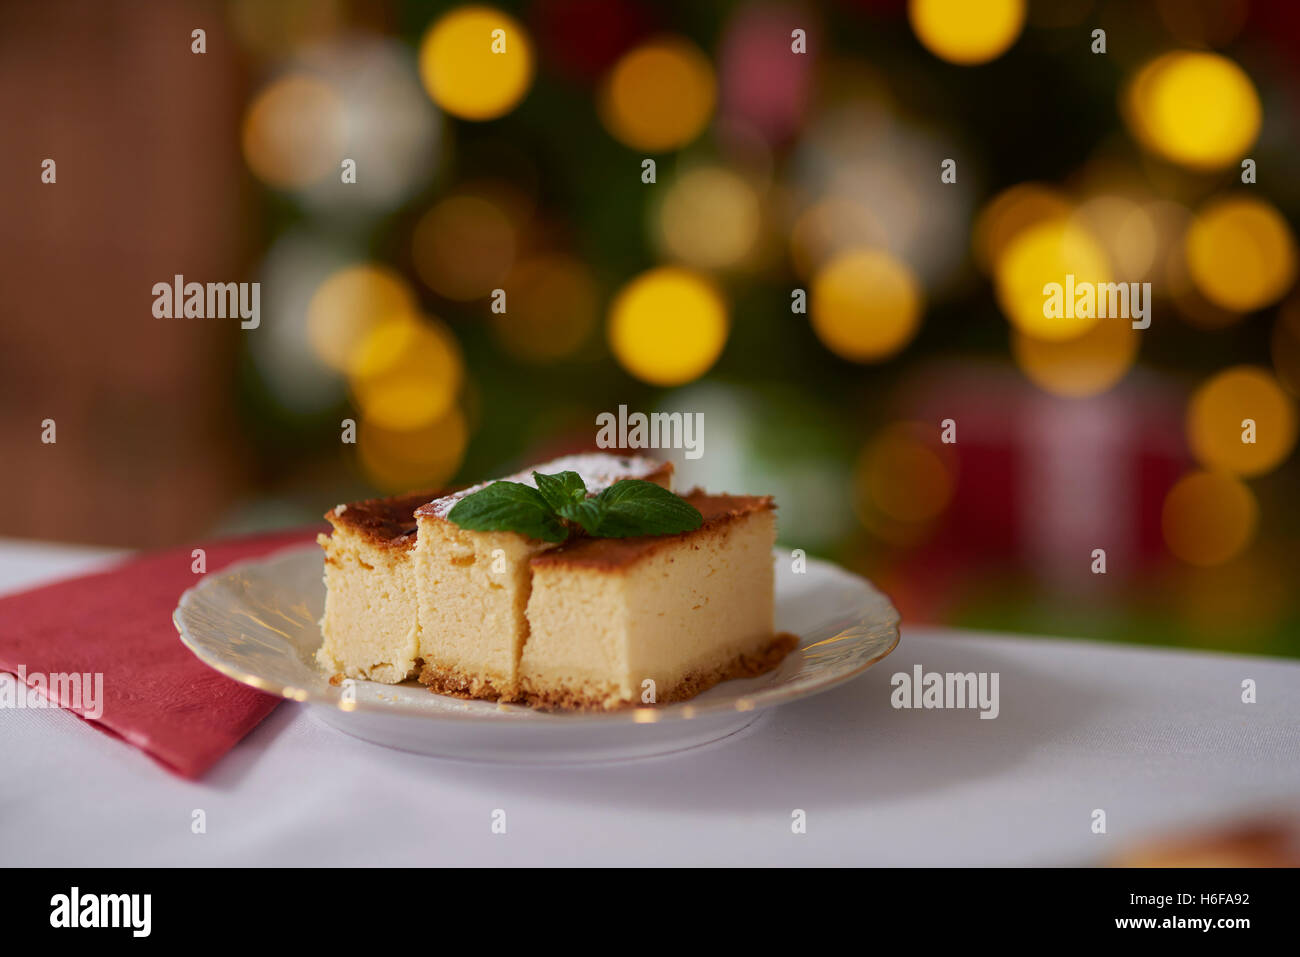 Cheesecake decorated with a mint leaf - Stock Image